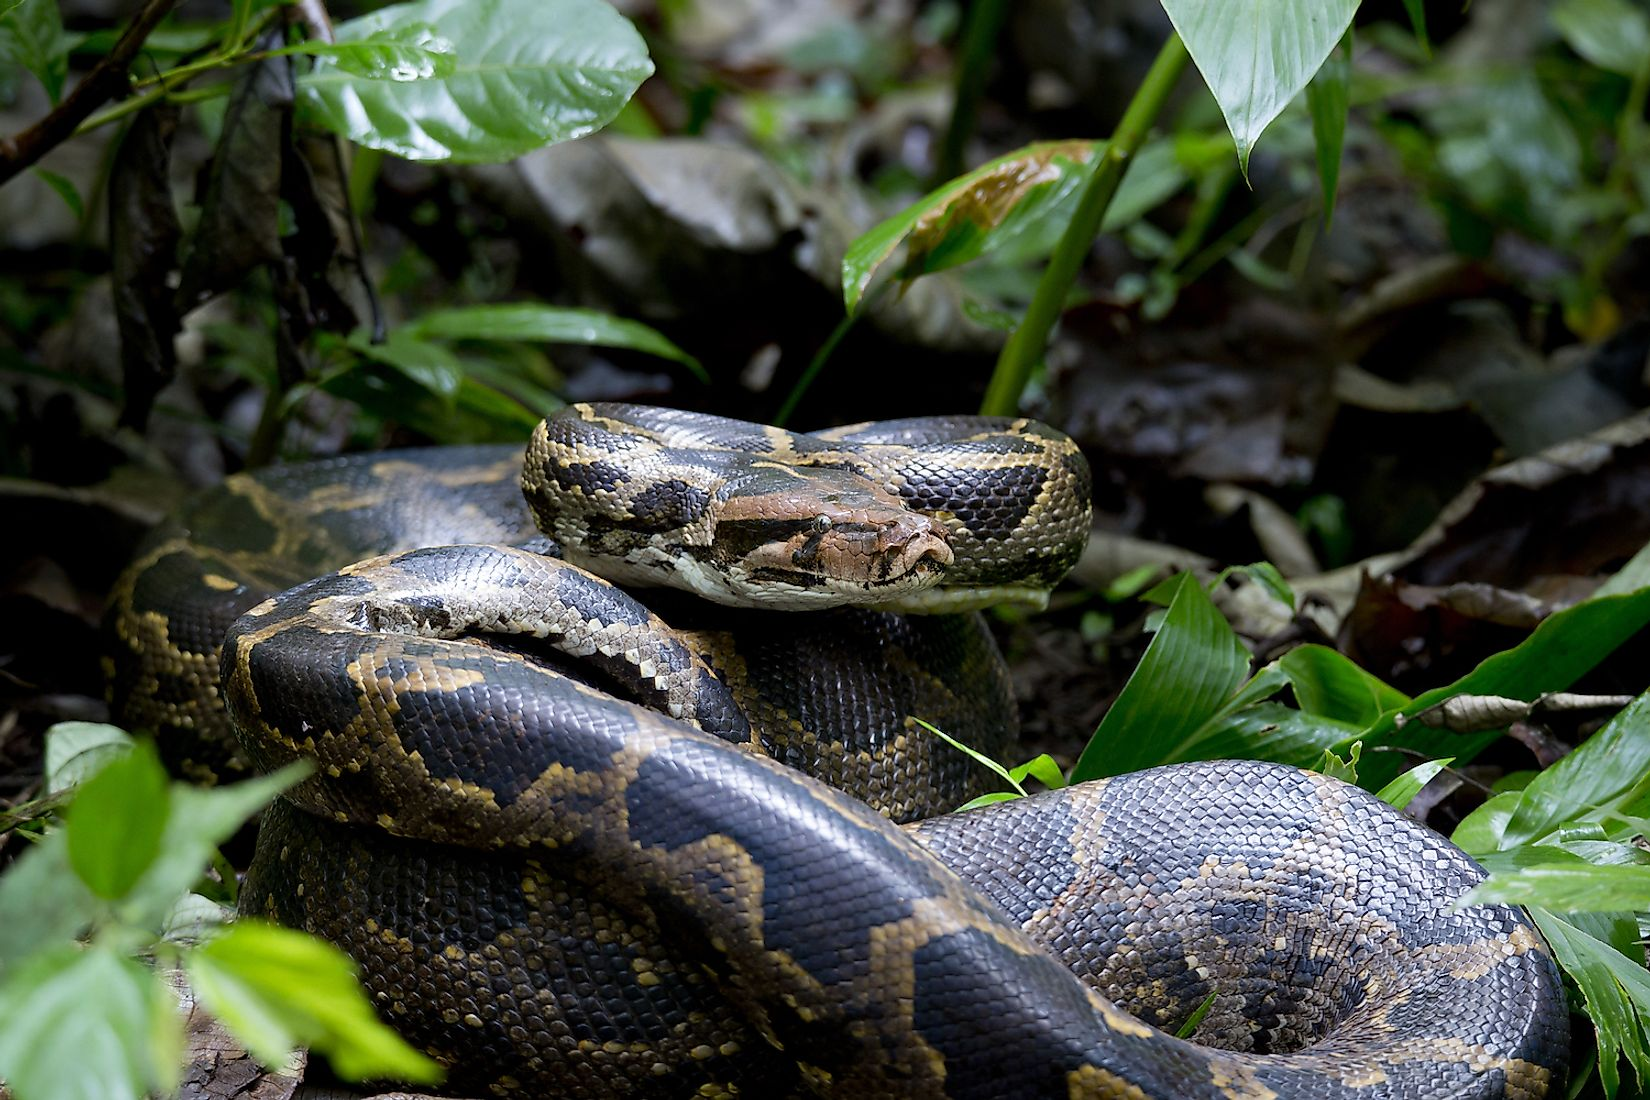 A python in Indian forest. Image credit: Girish HC/Shutterstock.com